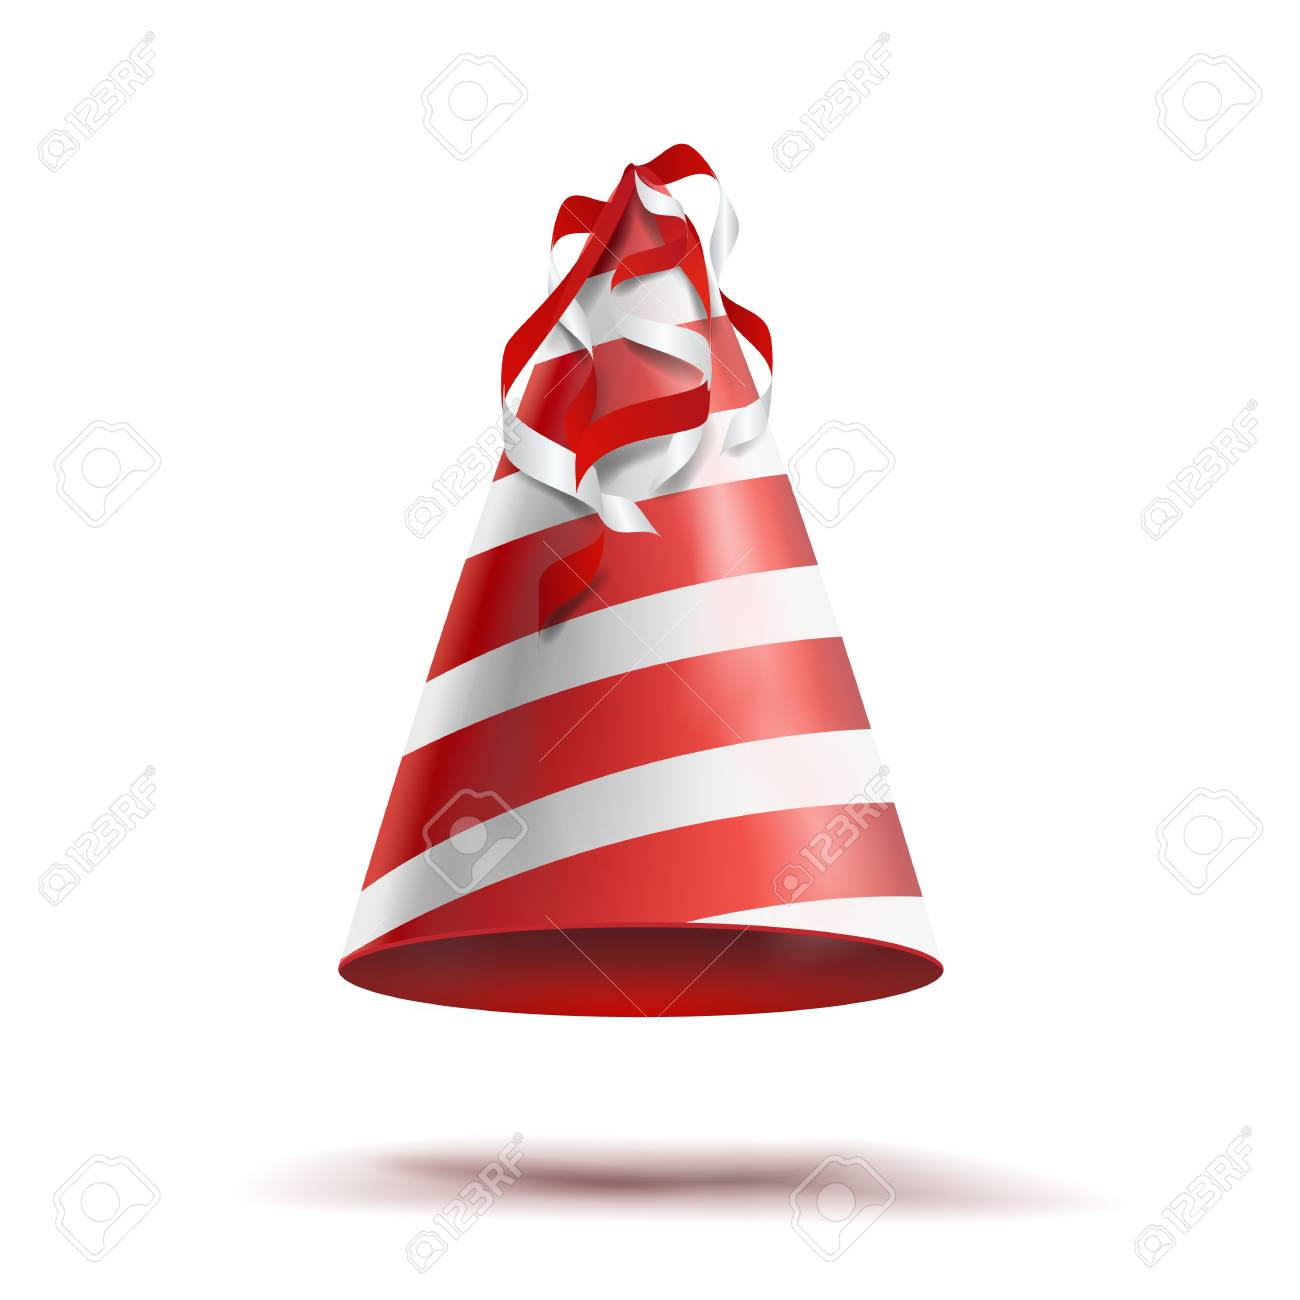 Party Hat Vector Classic Red White Striped Craft Birthday Isolated Stock